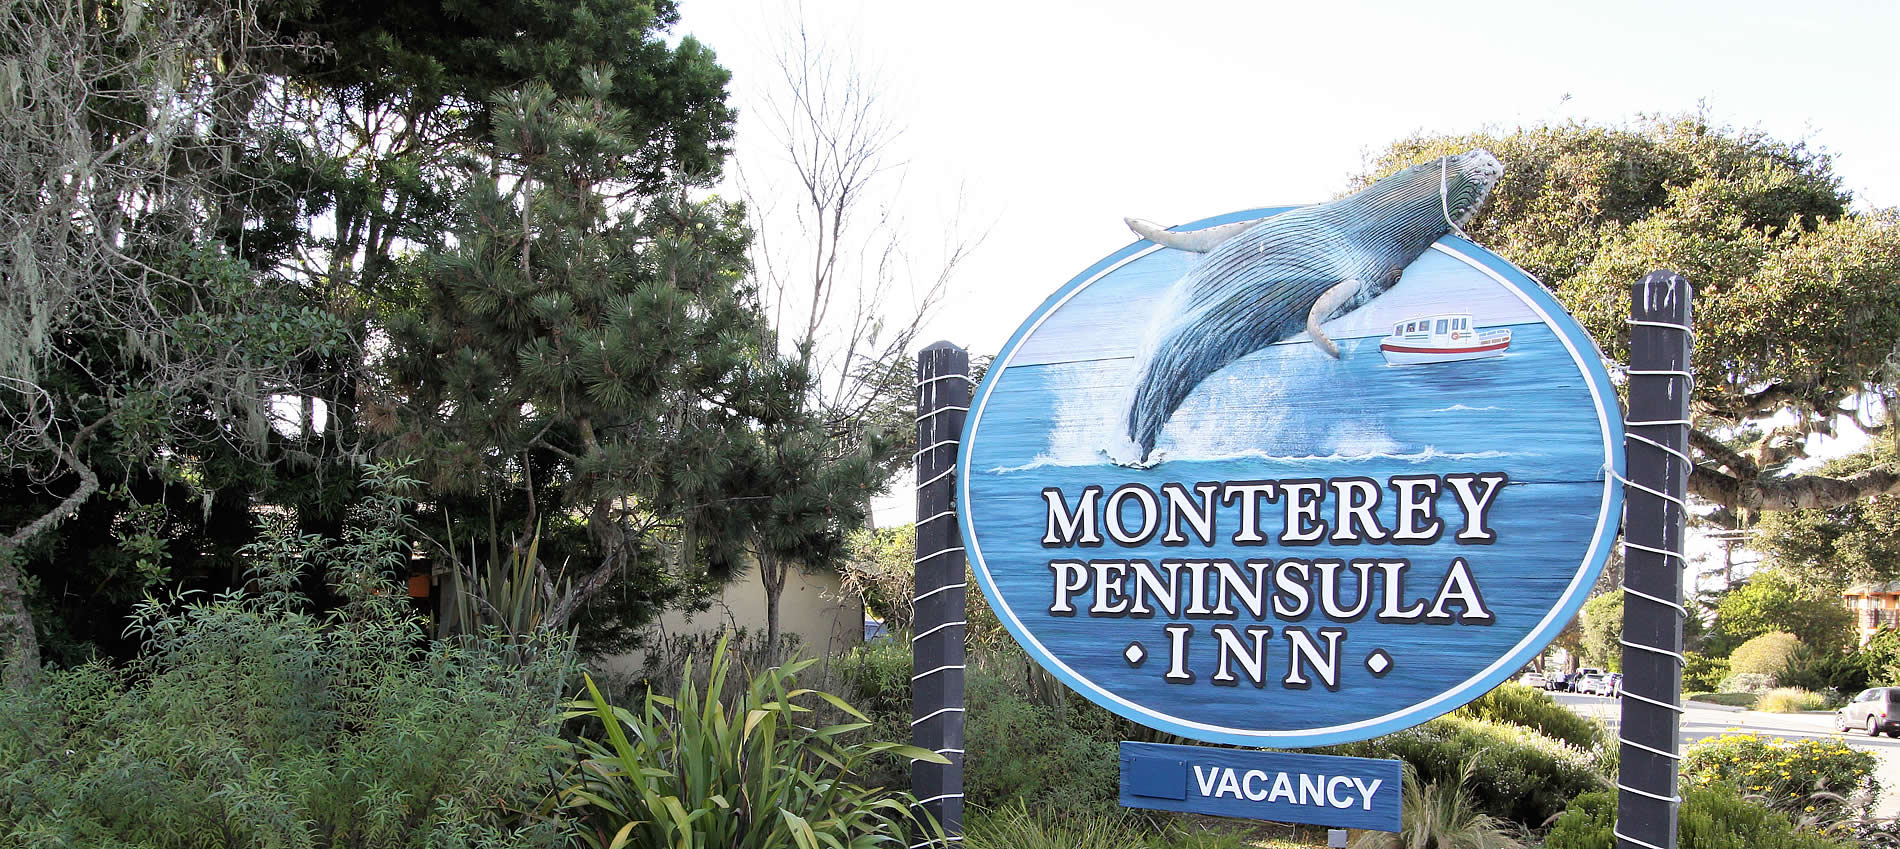 monterey peninsula inn sign